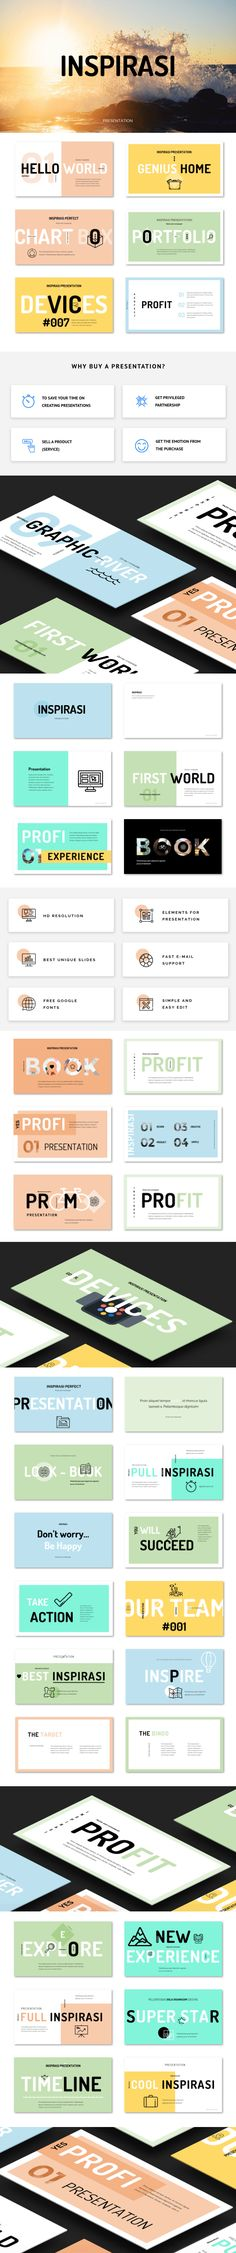 Buy INSPIRASI - #Powerpoint Presentation Template by GeniusHome1 on GraphicRiver.  Why Buy a Presentation? Save your time on the presentation of the development Get privileged partnership Sell a pro... Download here: https://graphicriver.net/item/inspirasi-powerpoint-presentation-template/19254886?ref=alena994